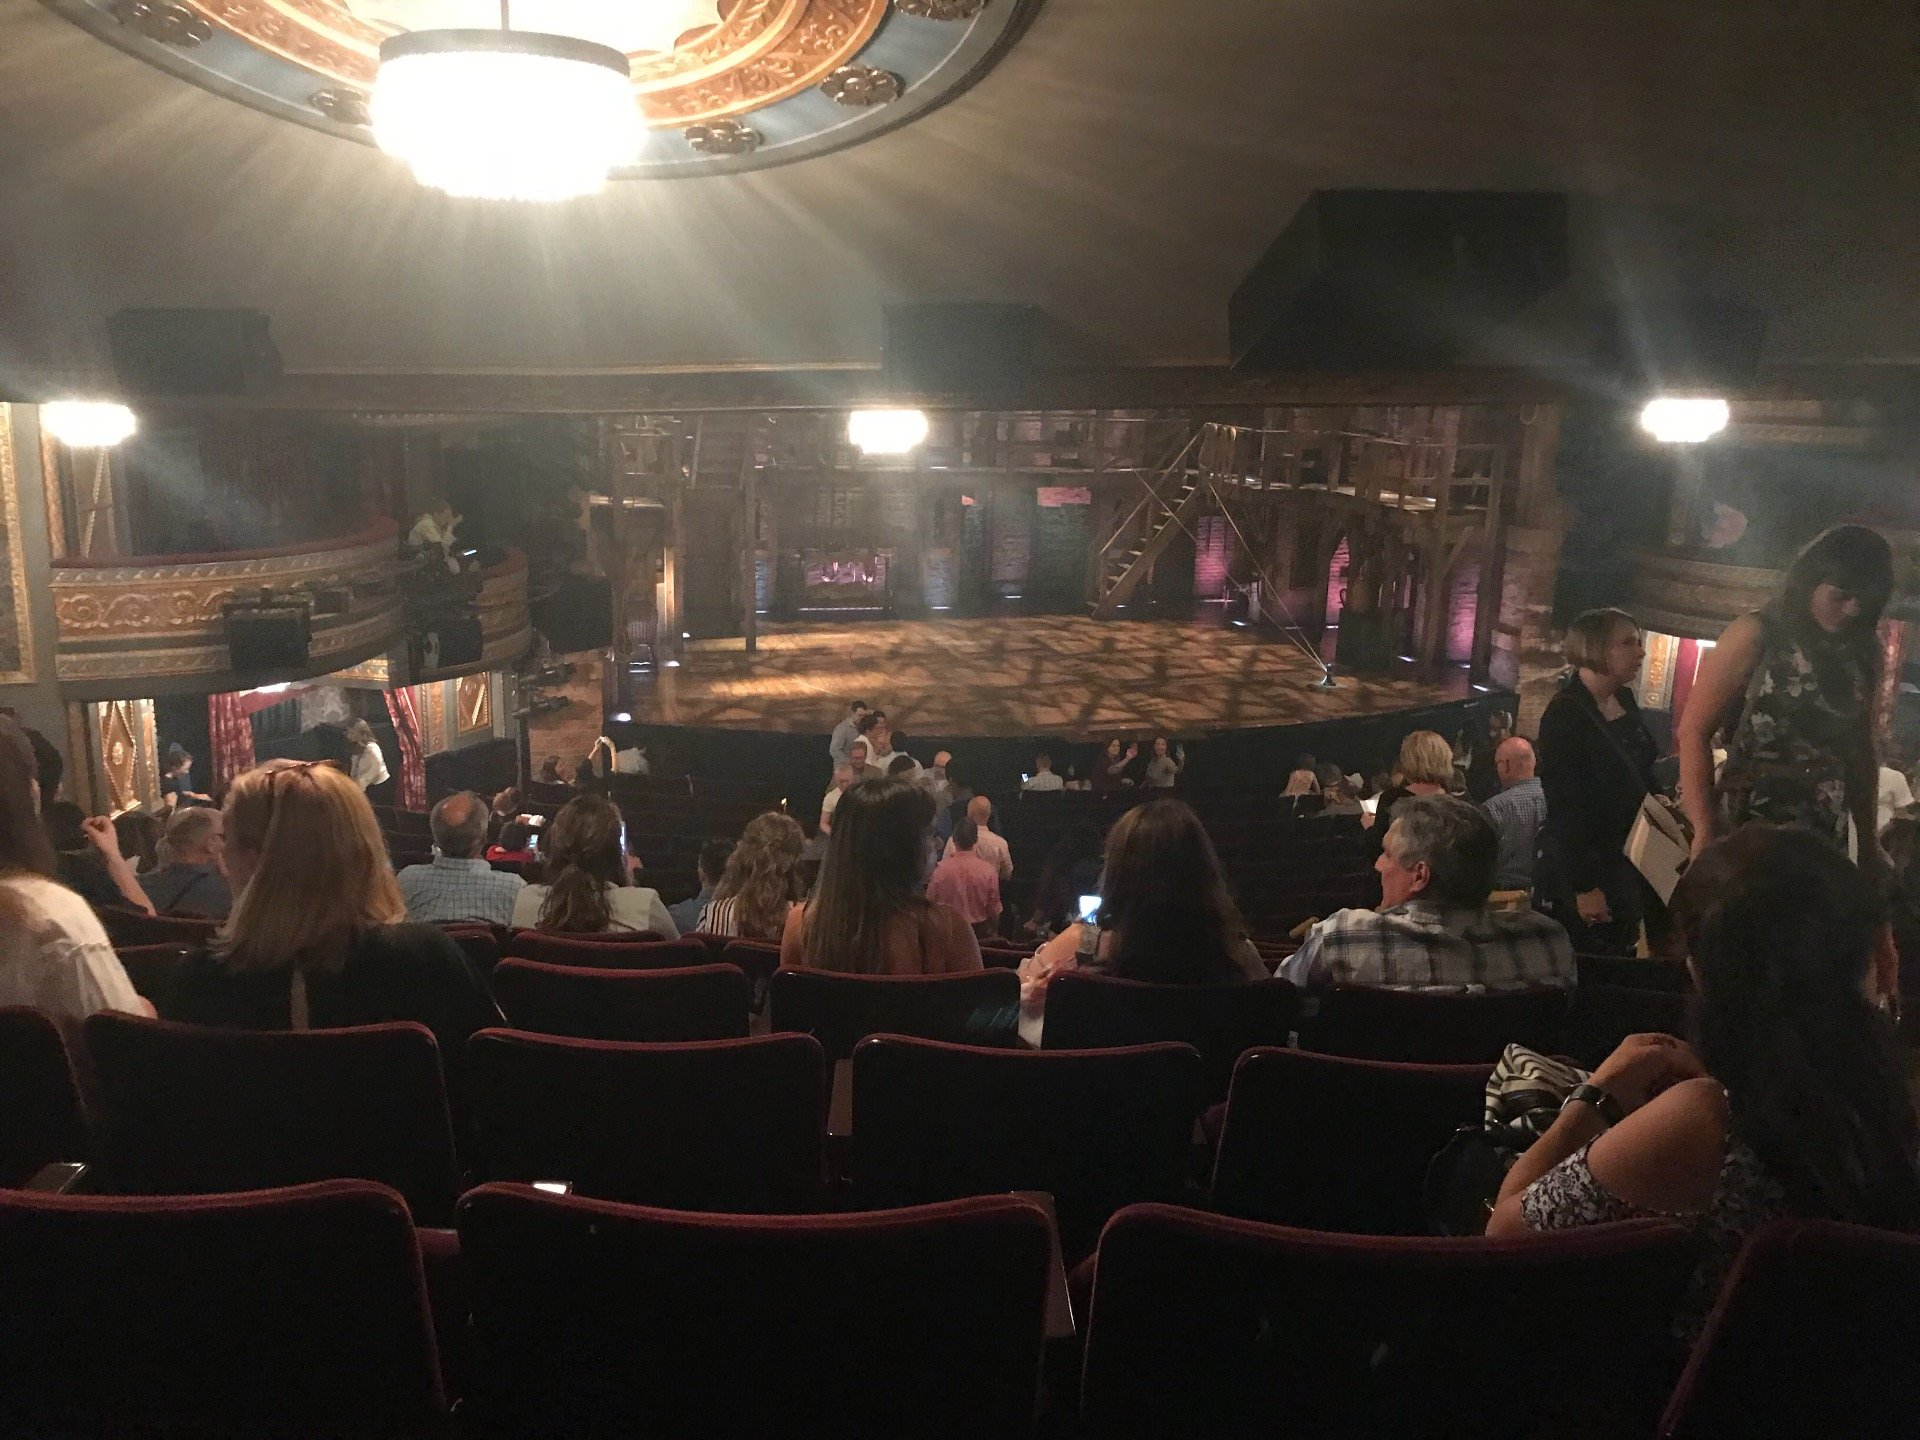 Richard Rodgers Theatre Section Orchestra L Row W Seat 11